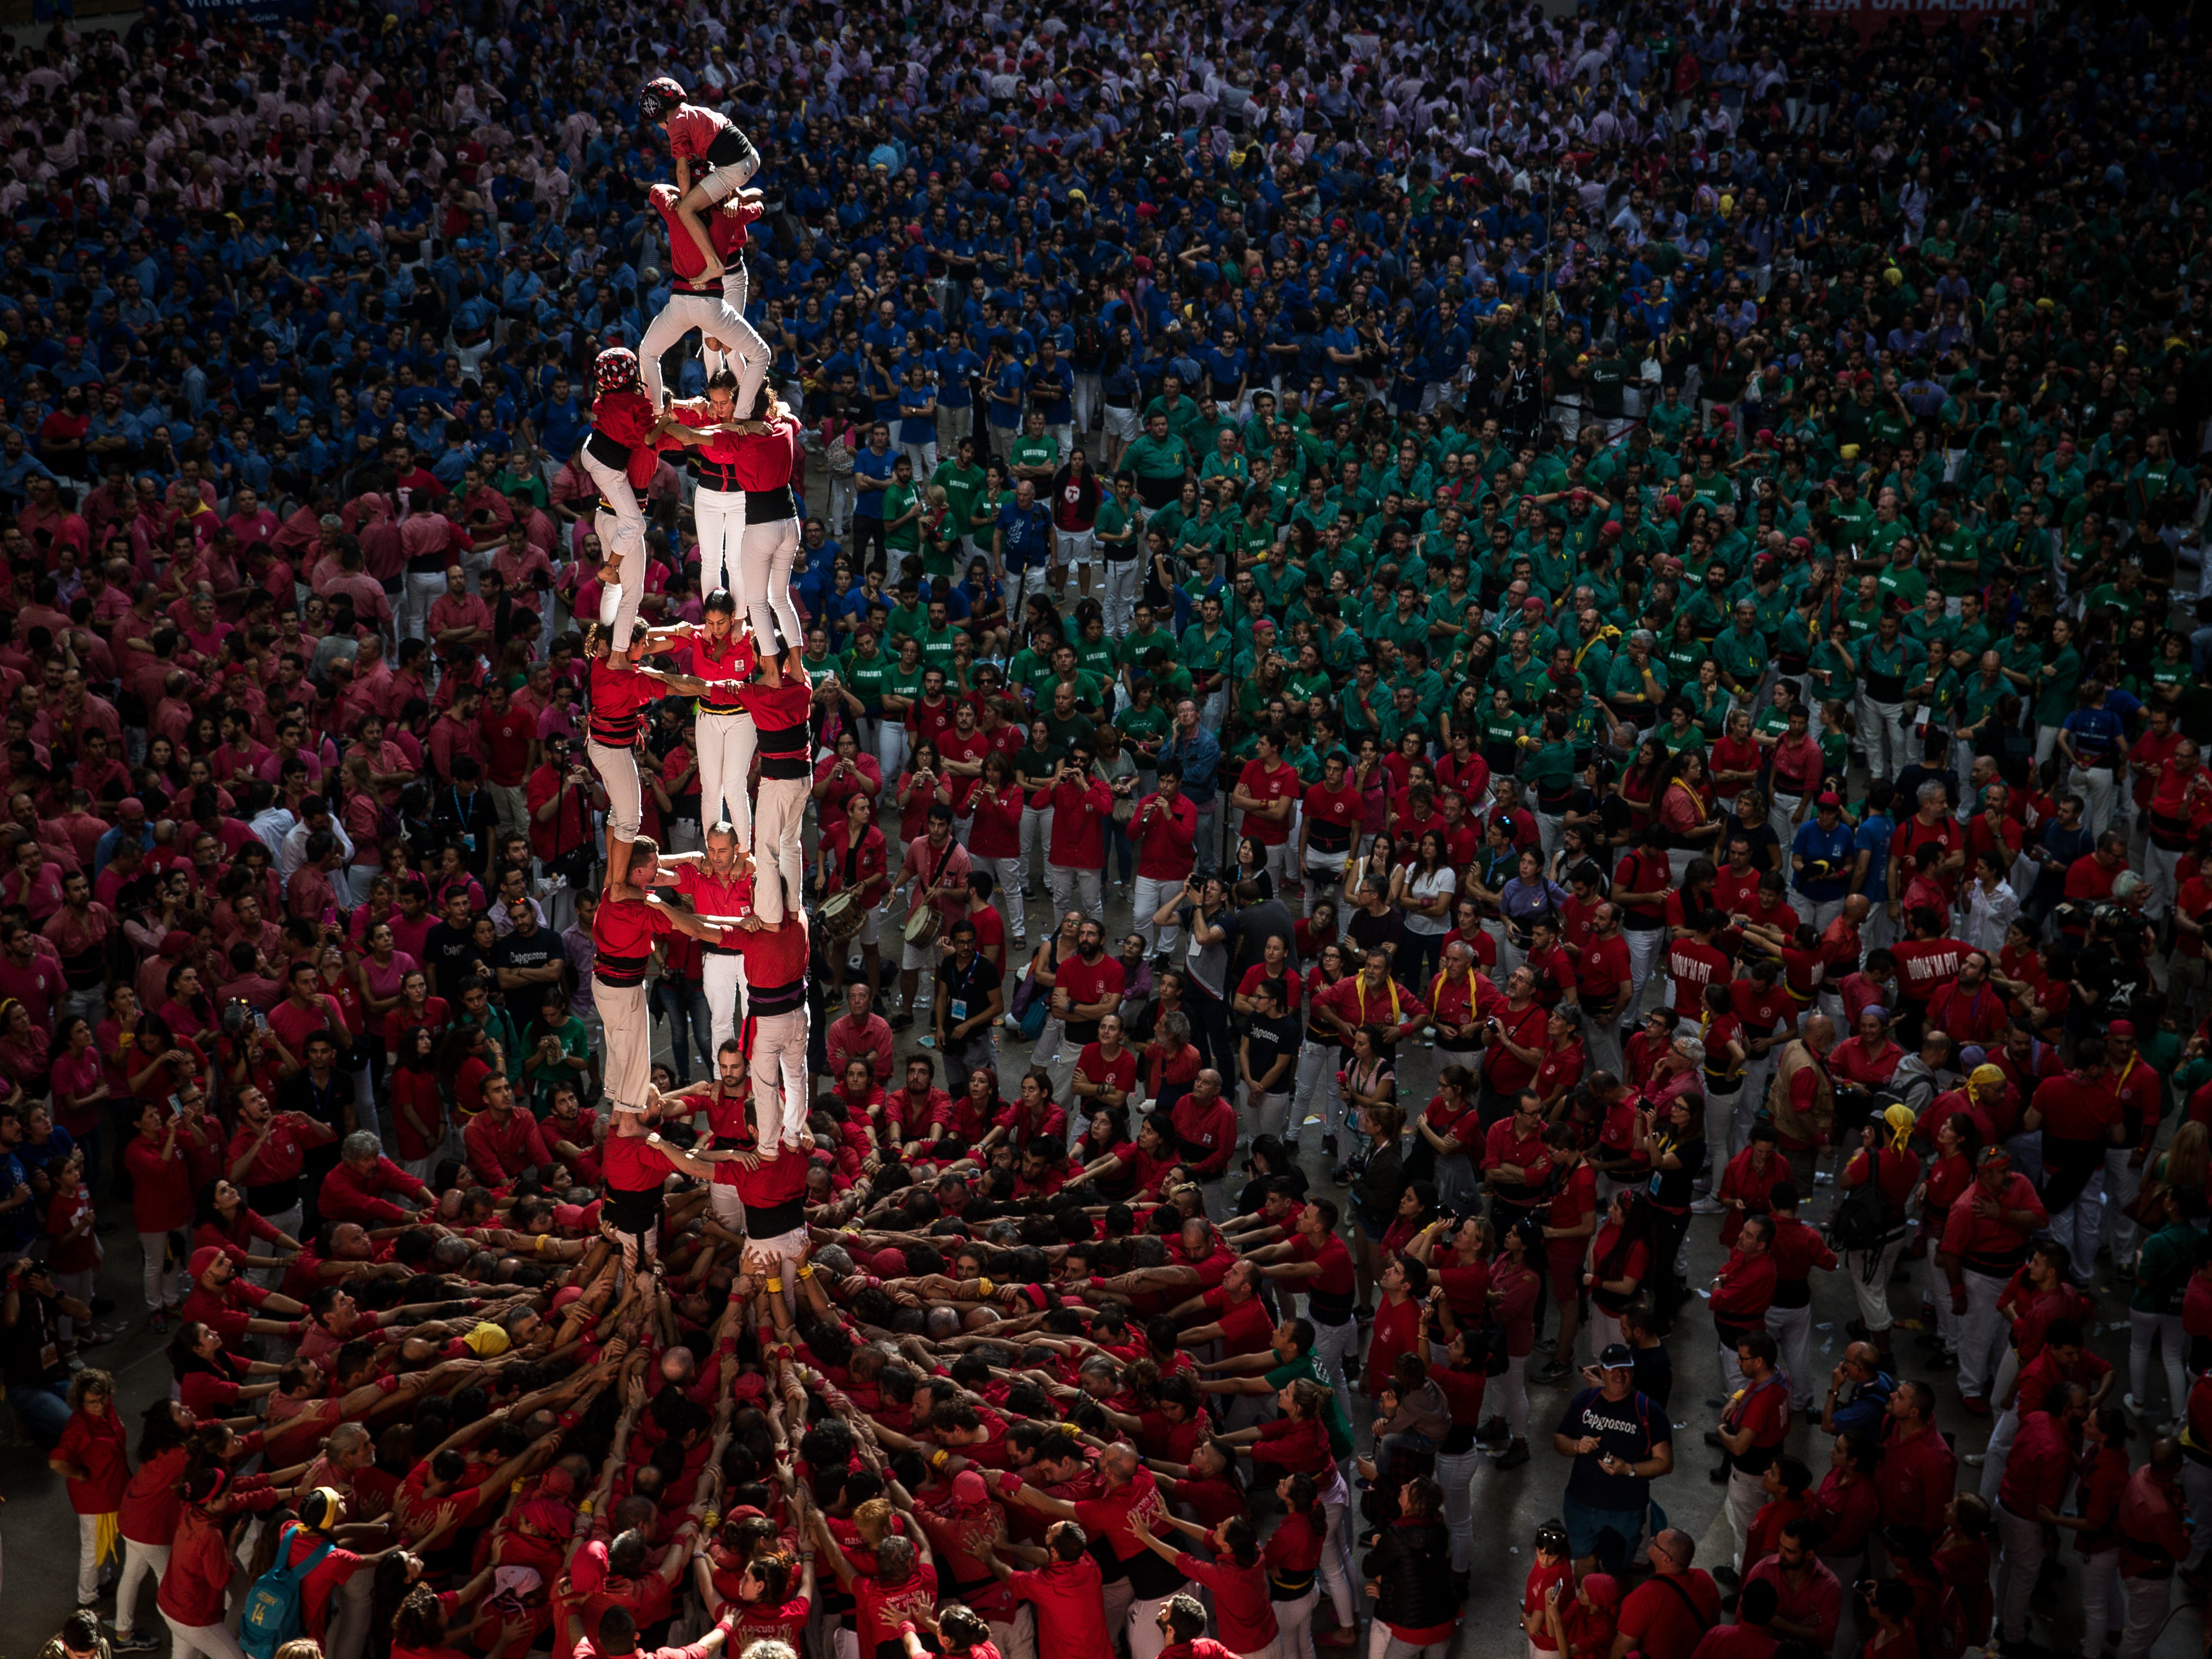 Members of the C. de Barcellona built a human tower during the 27th Tarragona Competition on October 07, 2018 in Tarragona, Spain. The 'Castellers' who build the human towers with precise techniques compete in groups, know as 'colles', at local fest